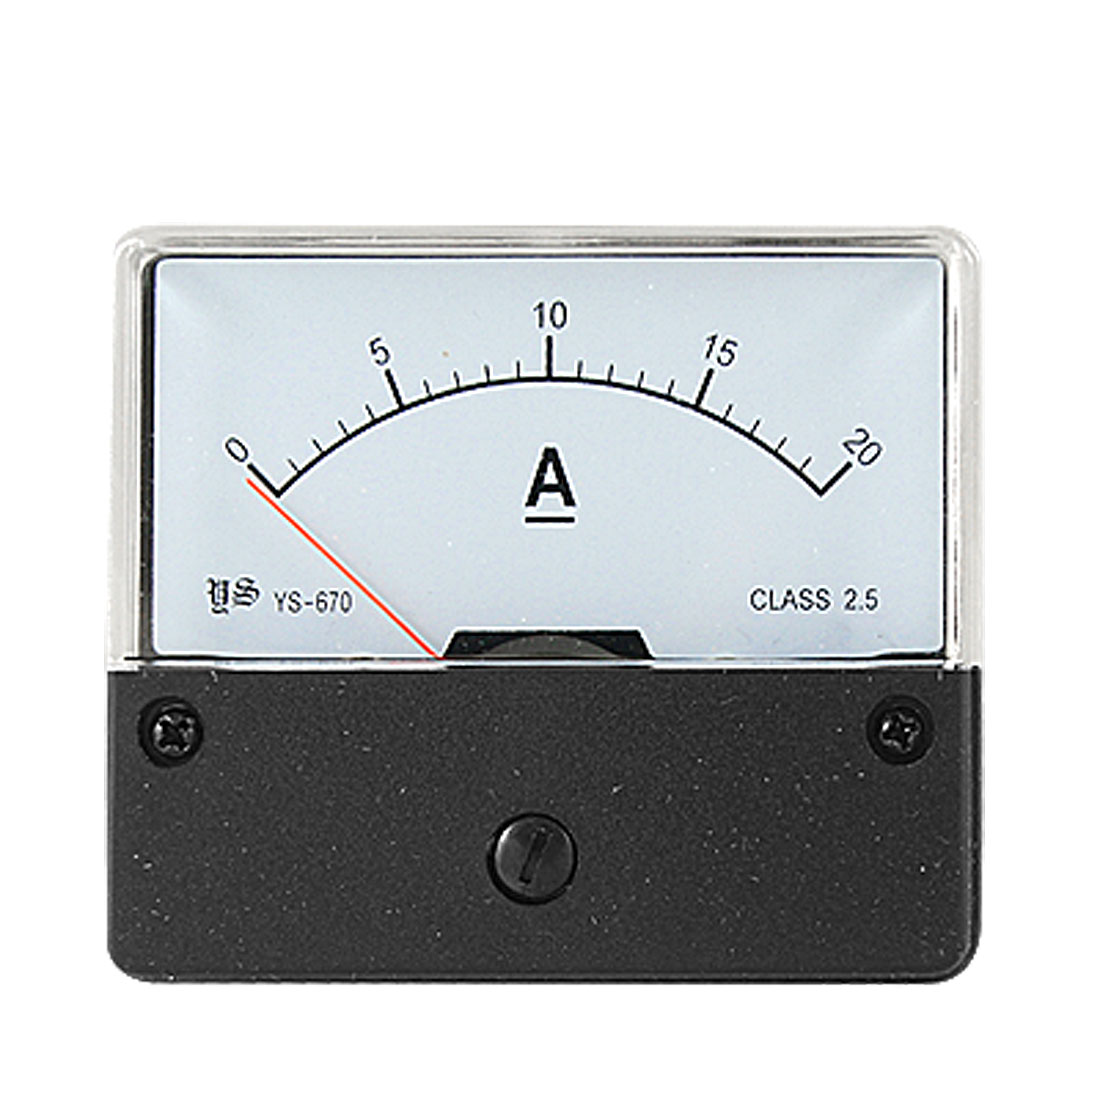 Class 2.5 Accuracy DC 0-20A Current Range Rectangle Amperemeter